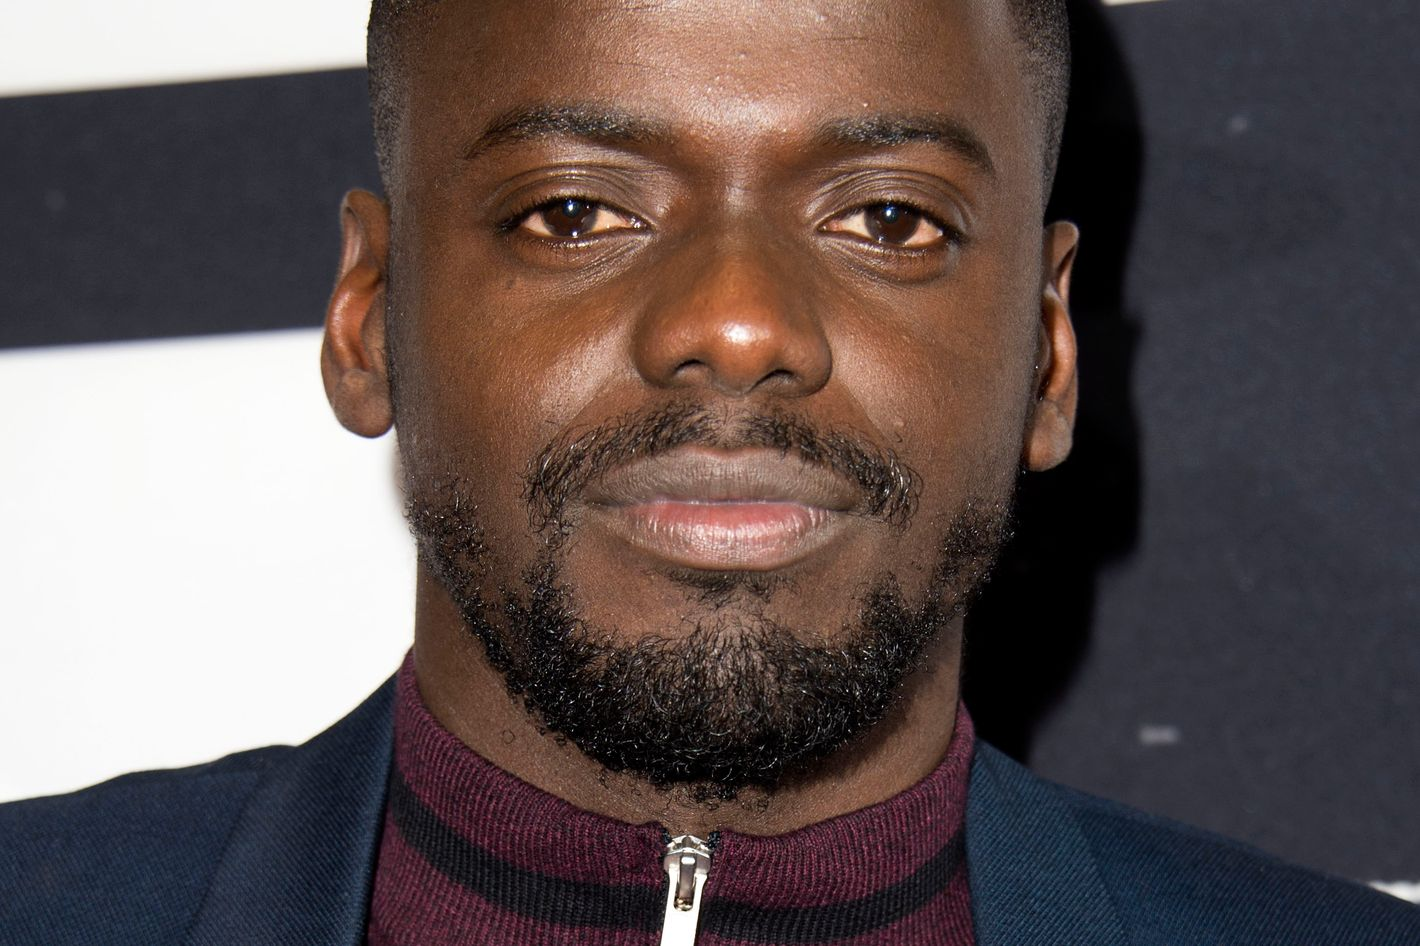 daniel kaluuya instagramdaniel kaluuya skins, daniel kaluuya instagram, daniel kaluuya fan mail, daniel kaluuya photo, daniel kaluuya height, daniel kaluuya ig, daniel kaluuya bio, daniel kaluuya zimbio, daniel kaluuya twitter, daniel kaluuya net worth, daniel kaluuya sicario, daniel kaluuya doctor who, daniel kaluuya imdb, daniel kaluuya agent, daniel kaluuya interview, daniel kaluuya movies and tv shows, daniel kaluuya facebook, daniel kaluuya troika, daniel kaluuya johnny english, daniel kaluuya bulge